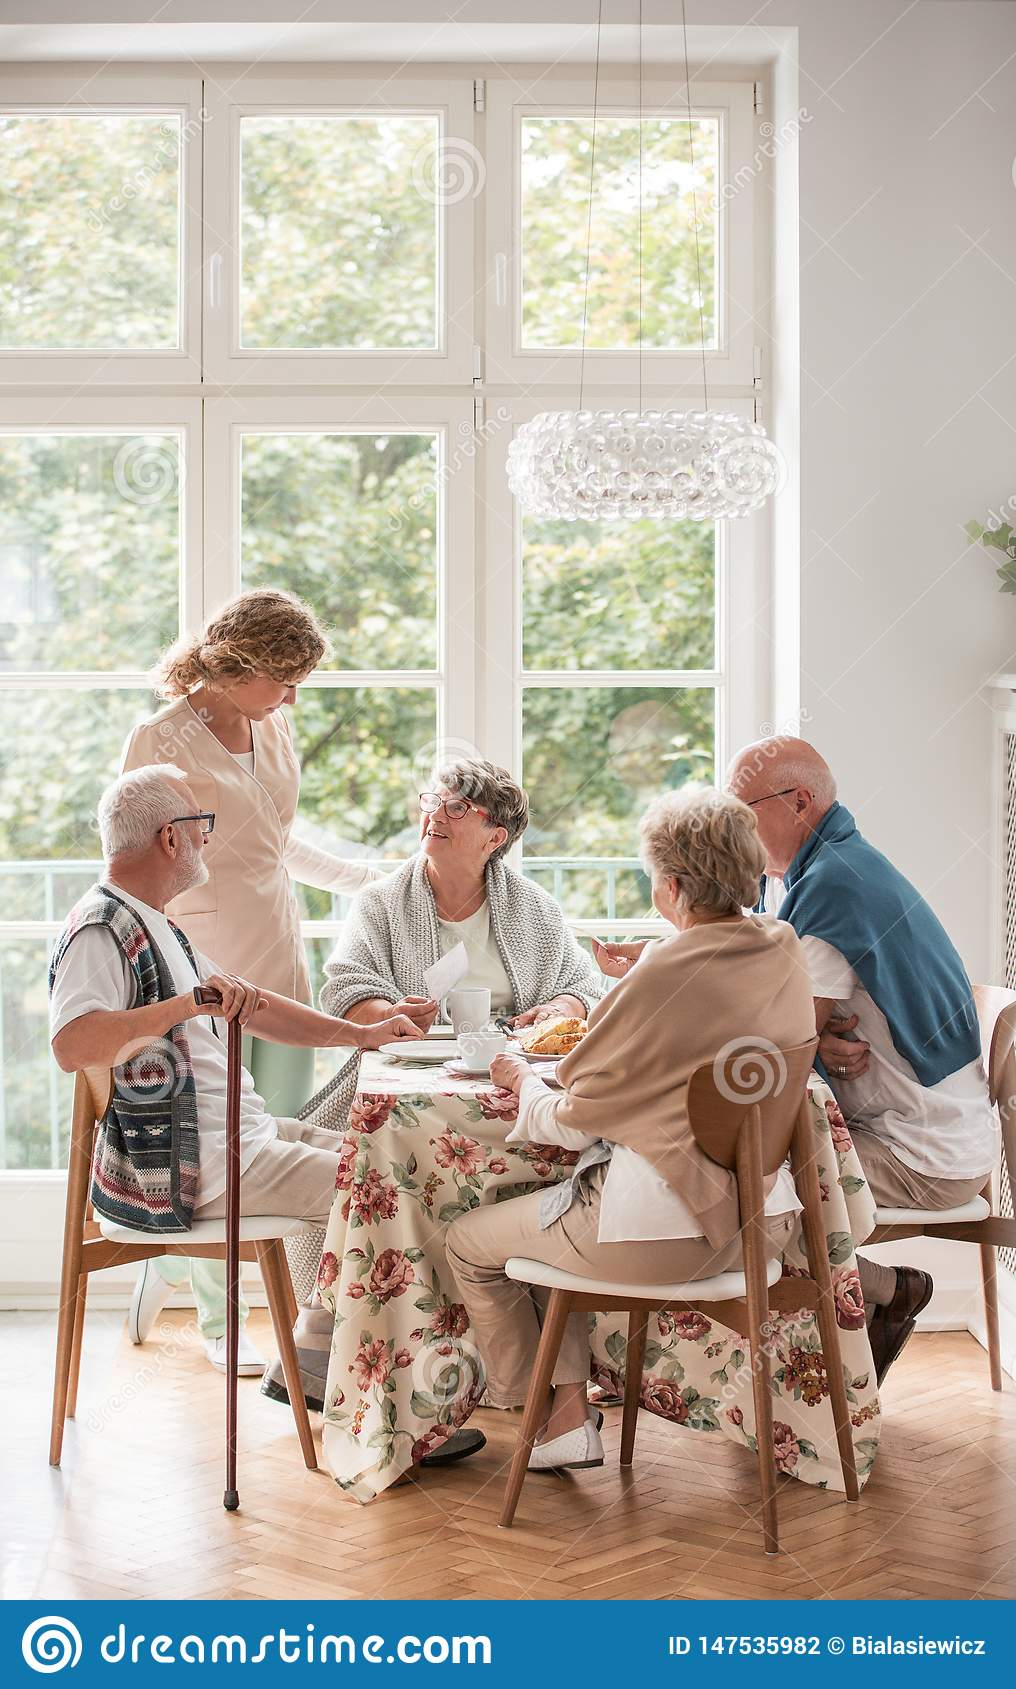 Nursing Home Dining Room Photos Free Royalty Free Stock Photos From Dreamstime